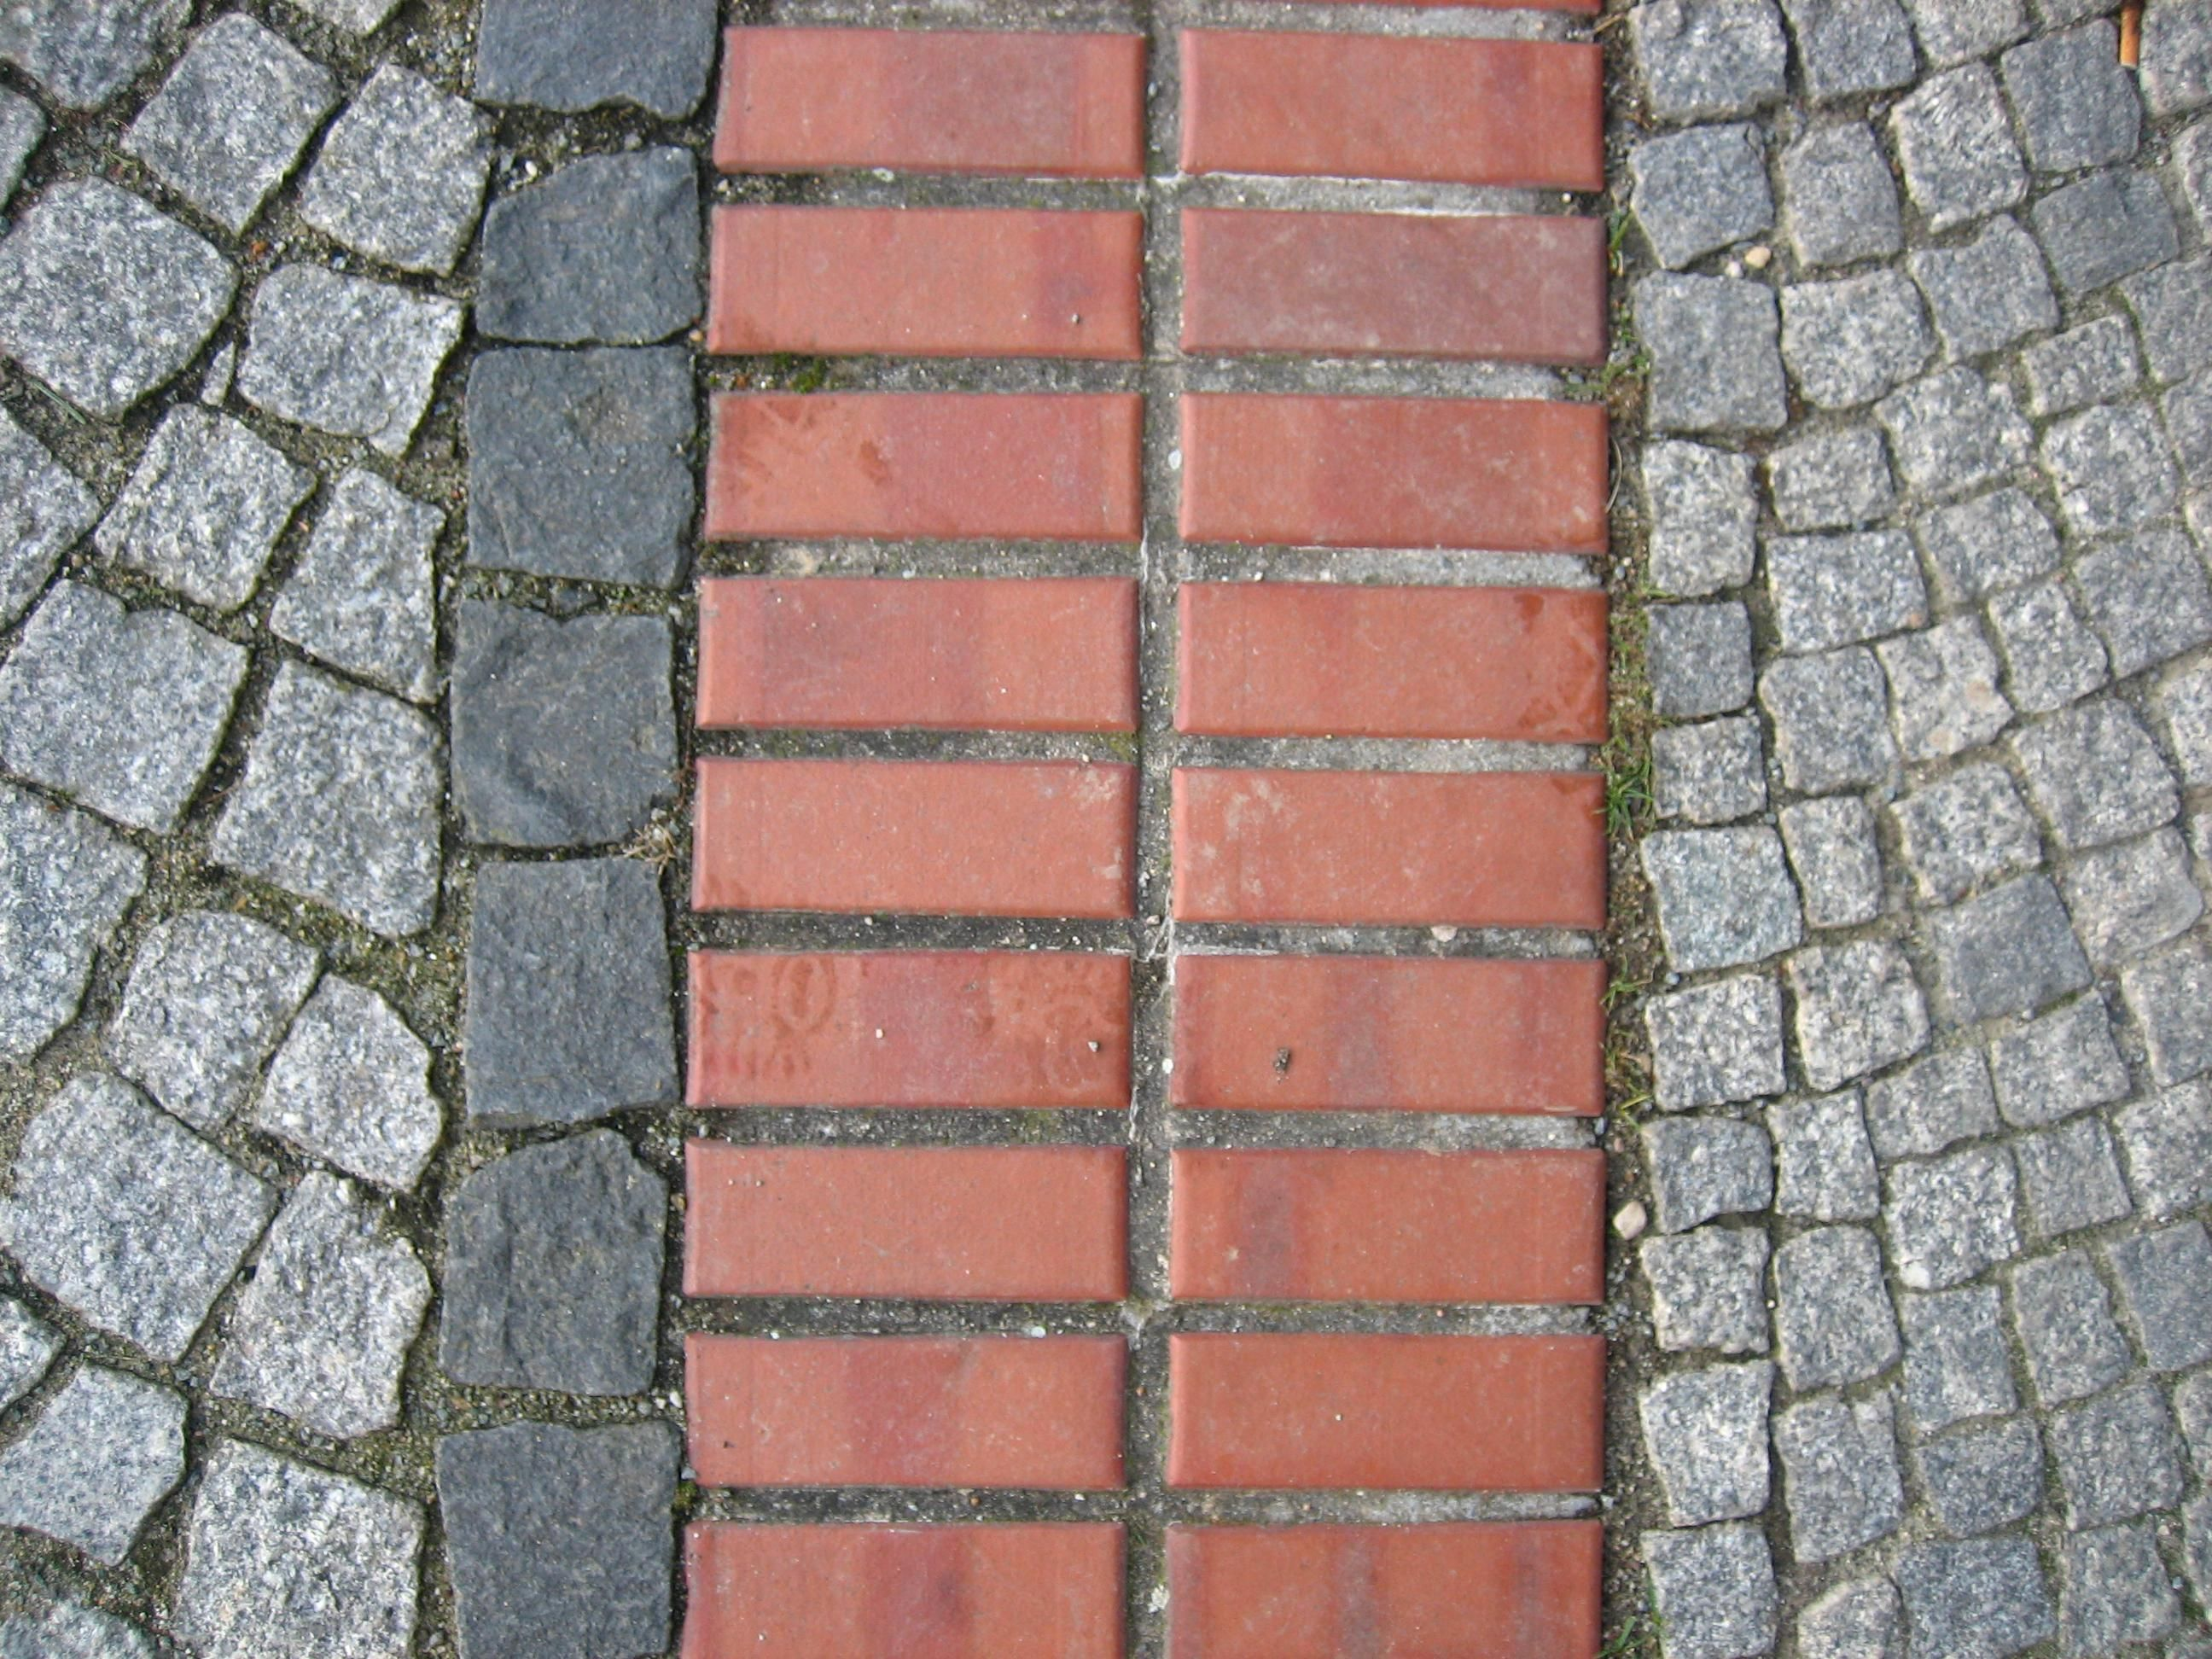 Red Paving Stones : File paving stone and red bricks g wikimedia commons